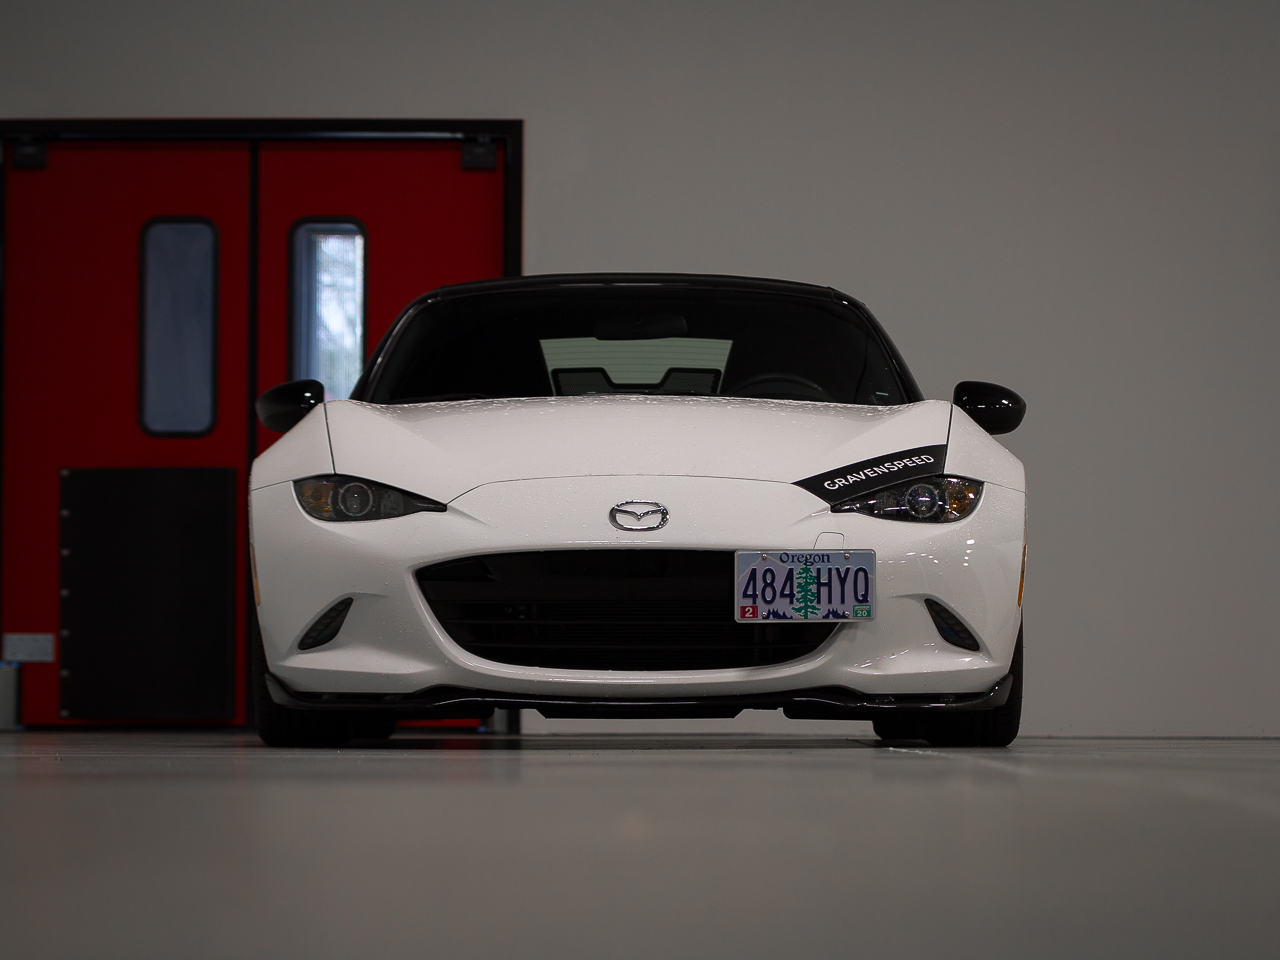 The CravenSpeed Platypus License Plate Mount installed on a white 2016 Mazda MX-5/Miata ND.